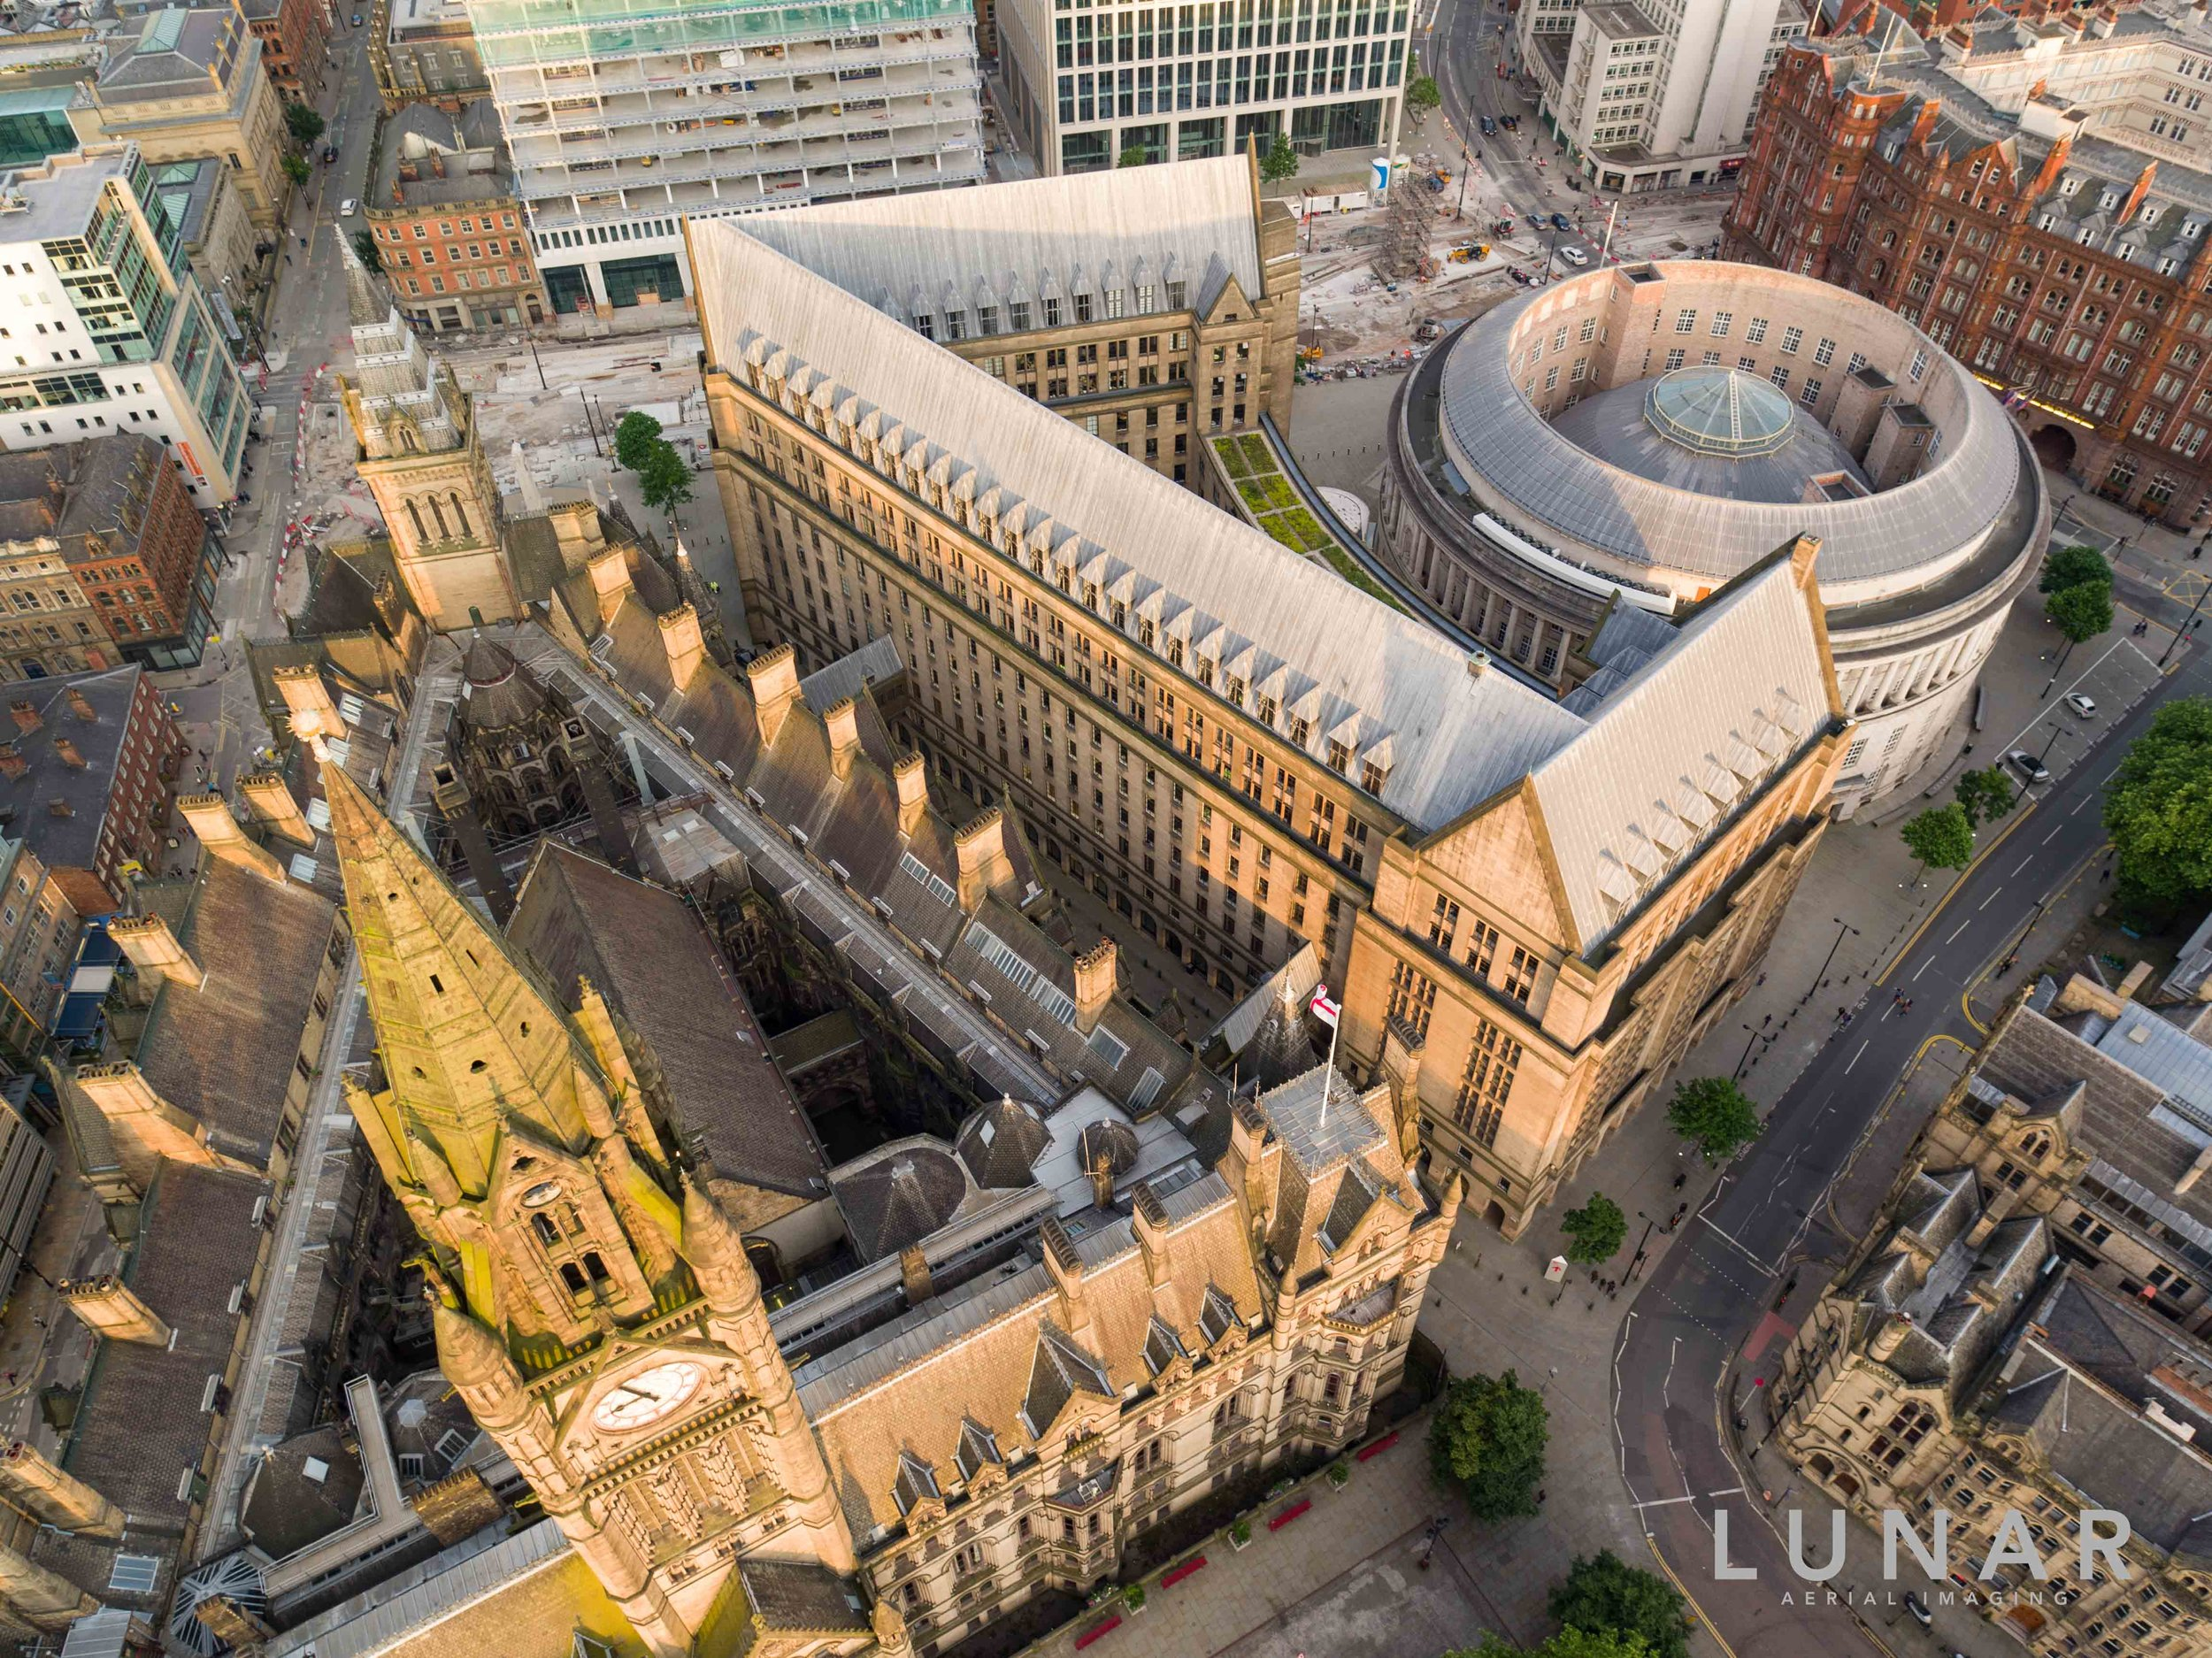 Looking down on Manchester Town Hall and Manchester Library